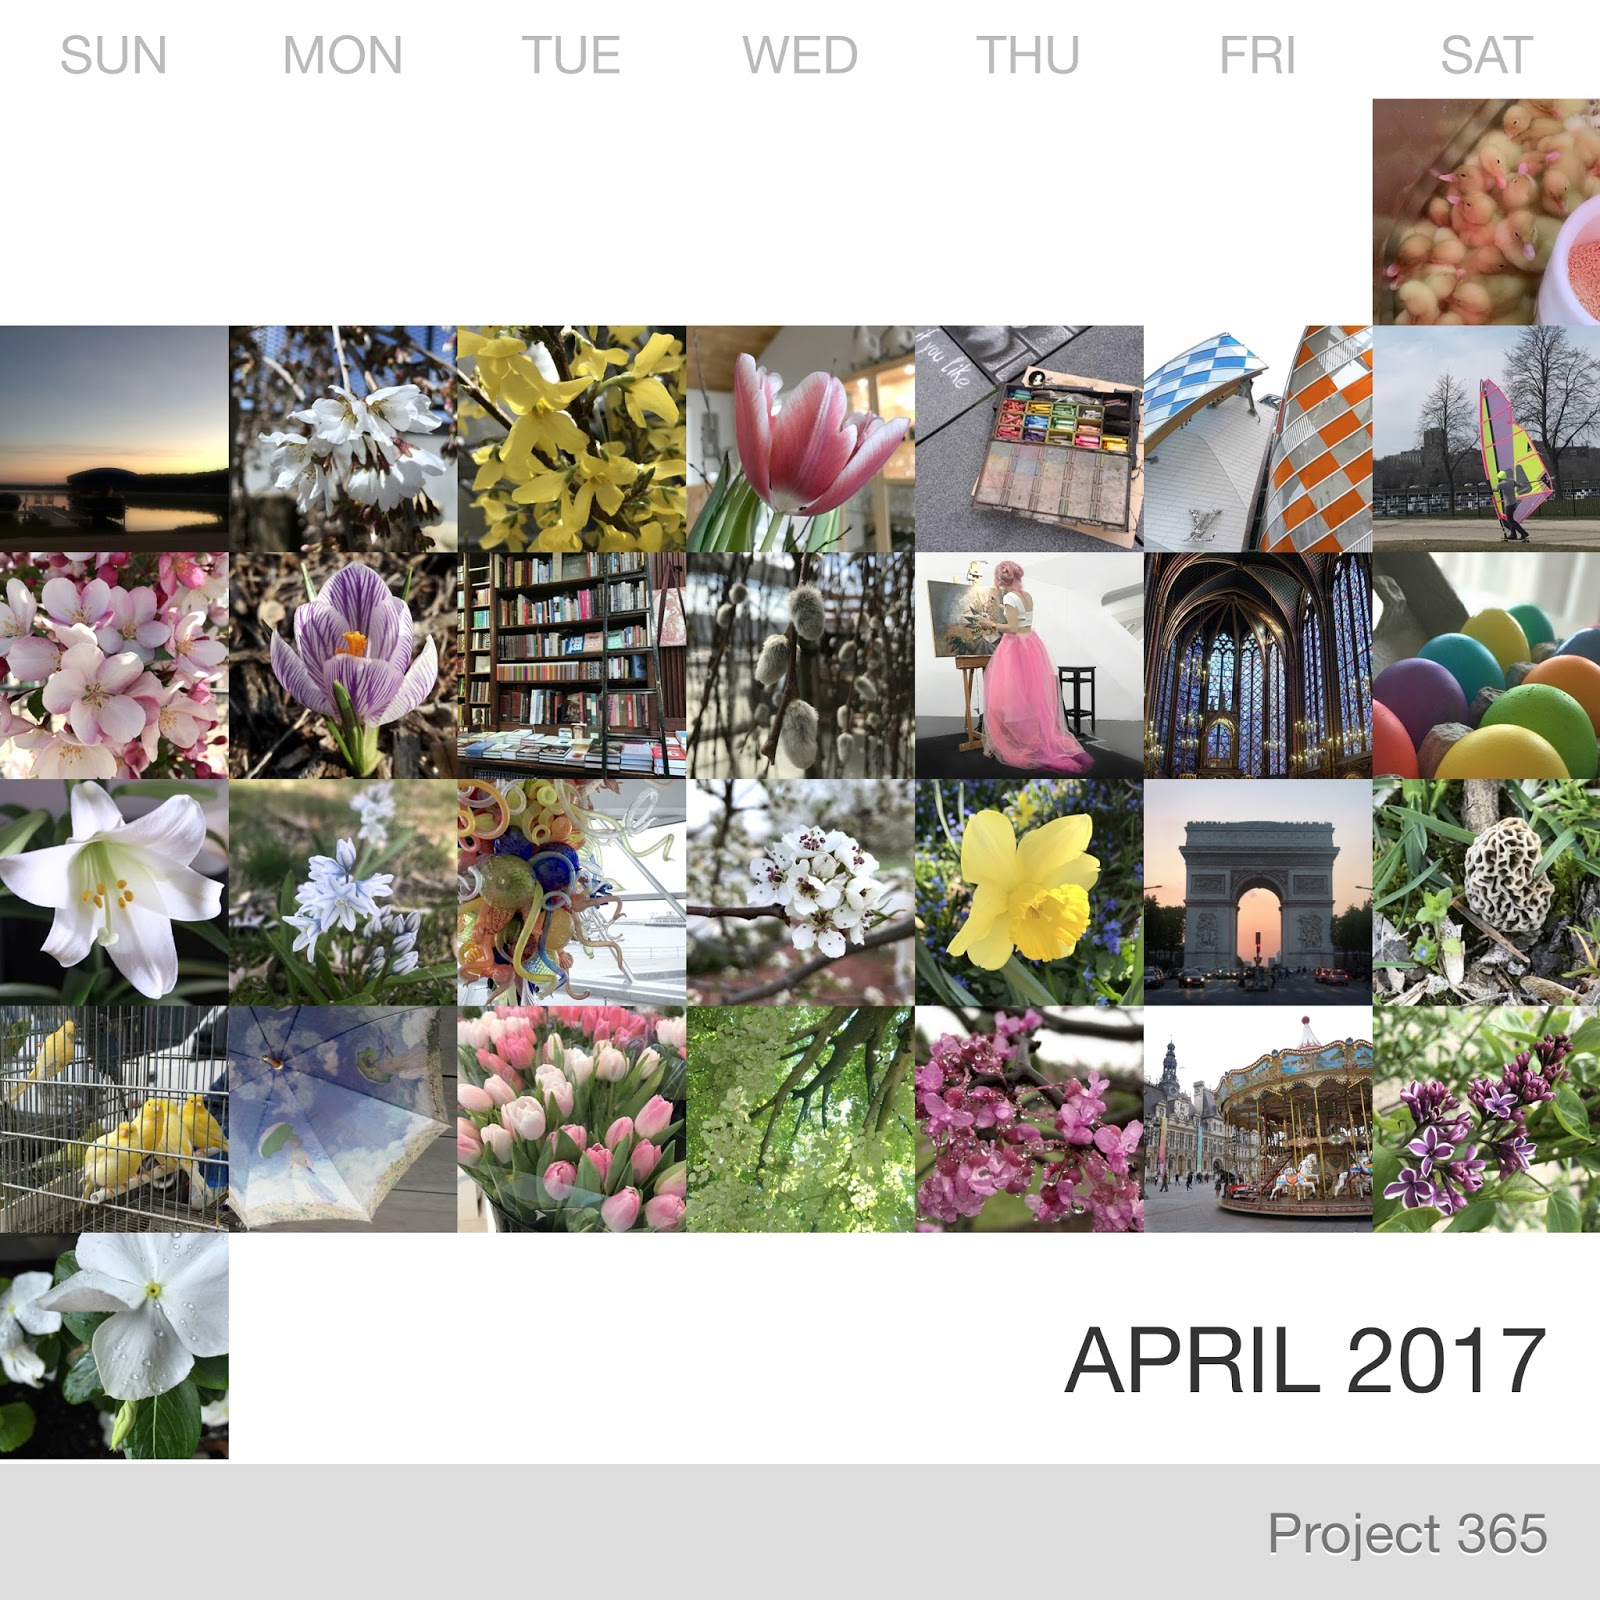 Project 365 _April-2017_Collage.jpg